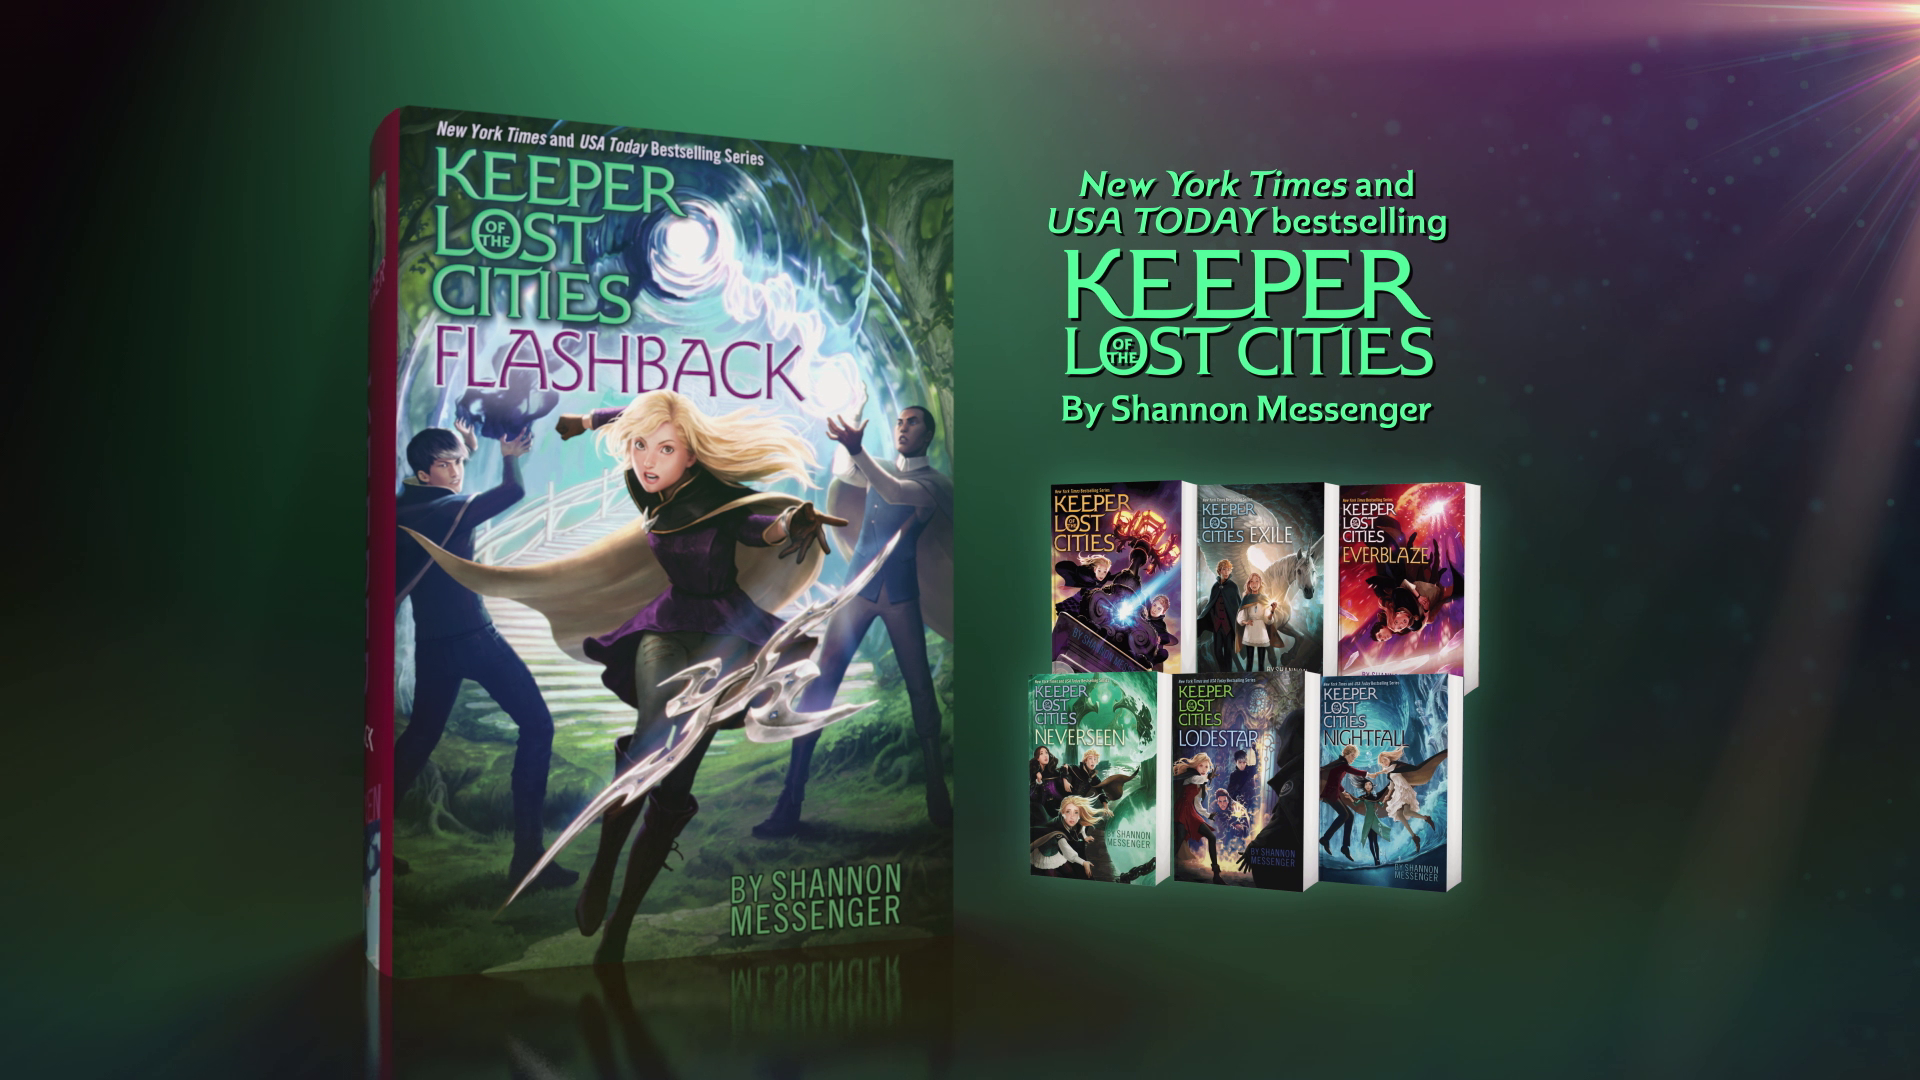 FLASHBACK: The Seventh Installment of the Bestselling KEEPER OF THE LOST CITIES Series